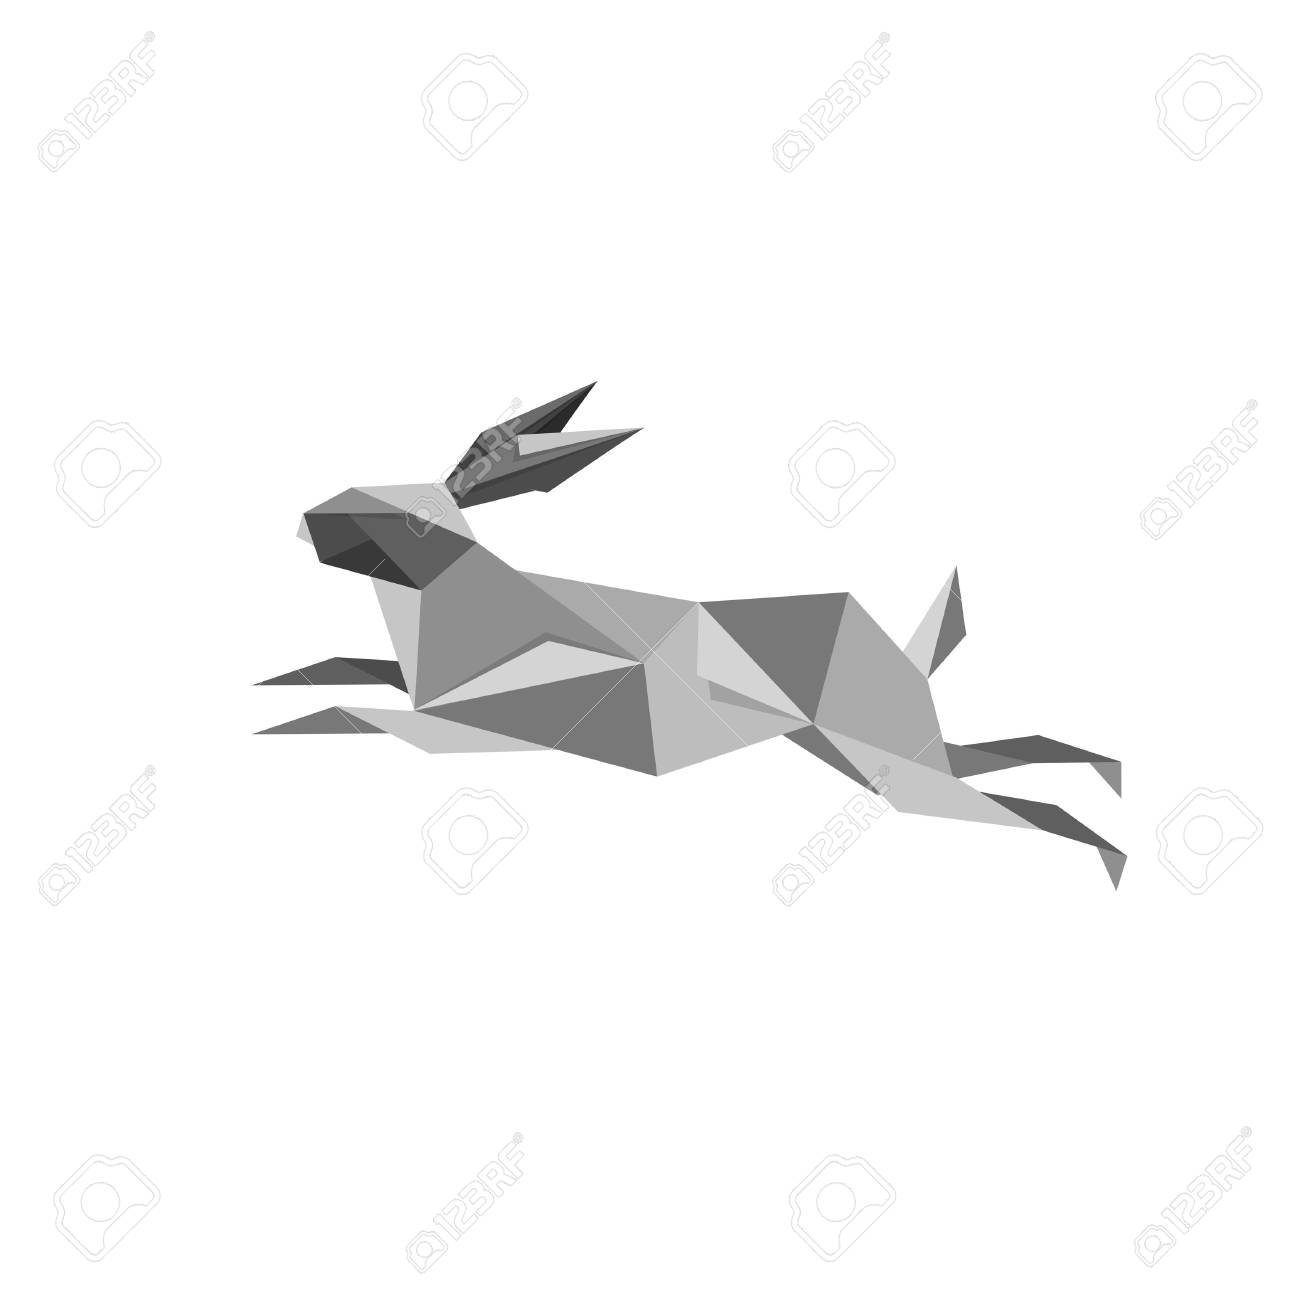 Illustration With Origami Jumping Rabbit Isolated On White Background Stock Vector